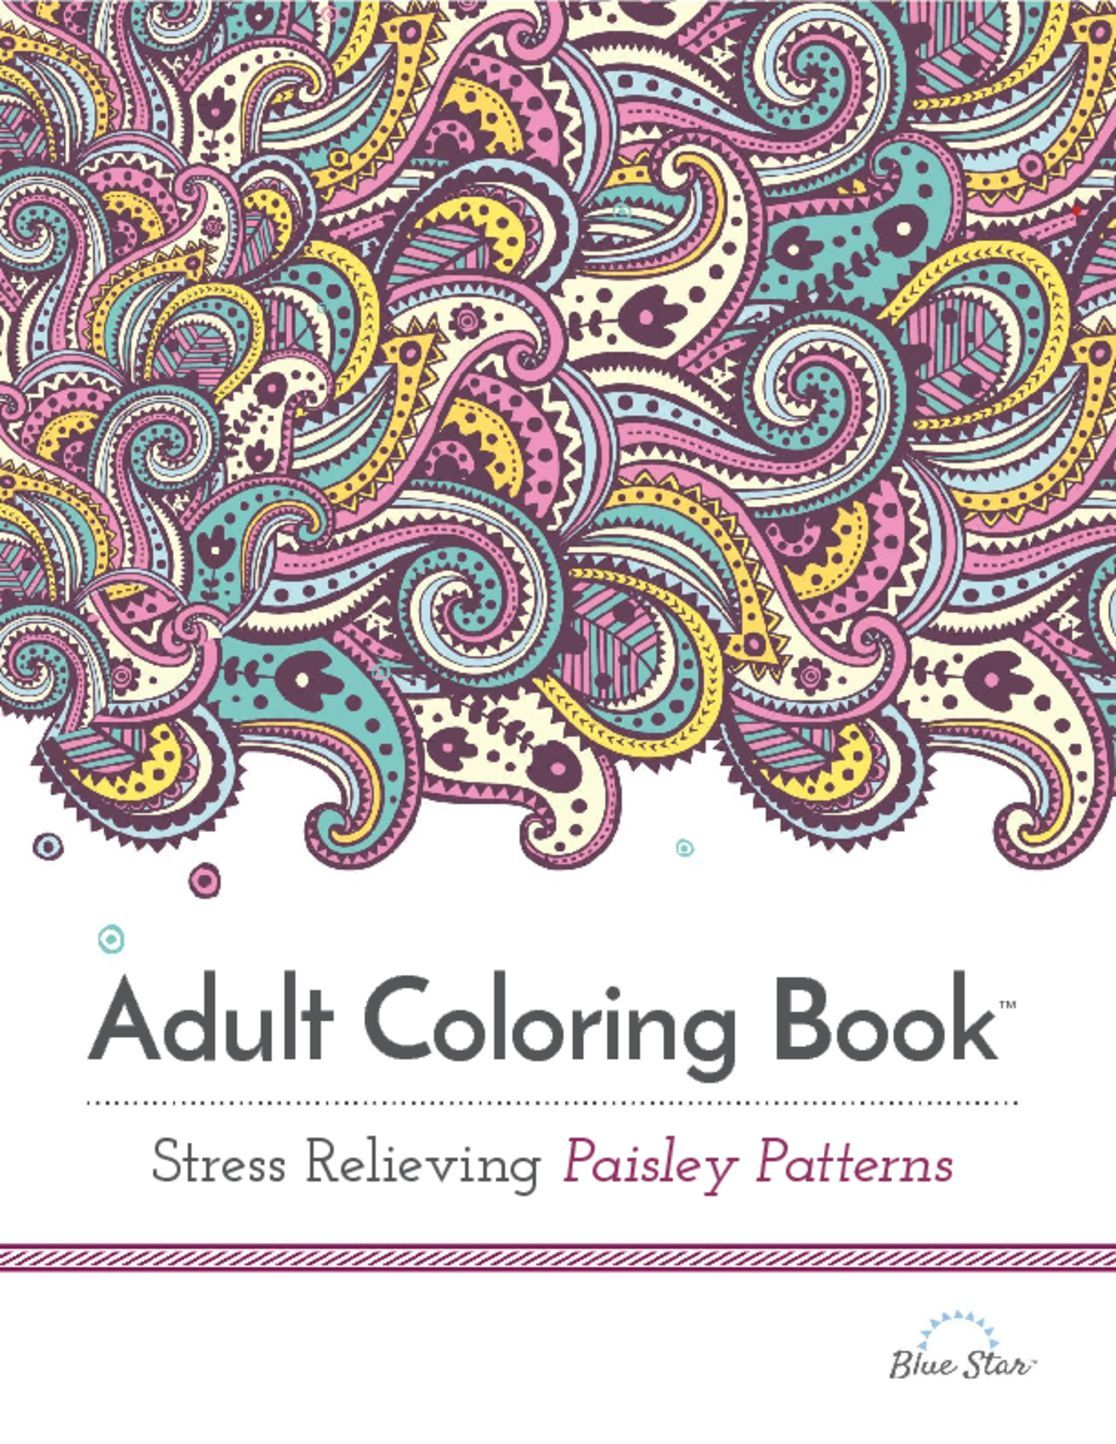 Adult Coloring Book Stress Relieving Paisley Patterns Digital